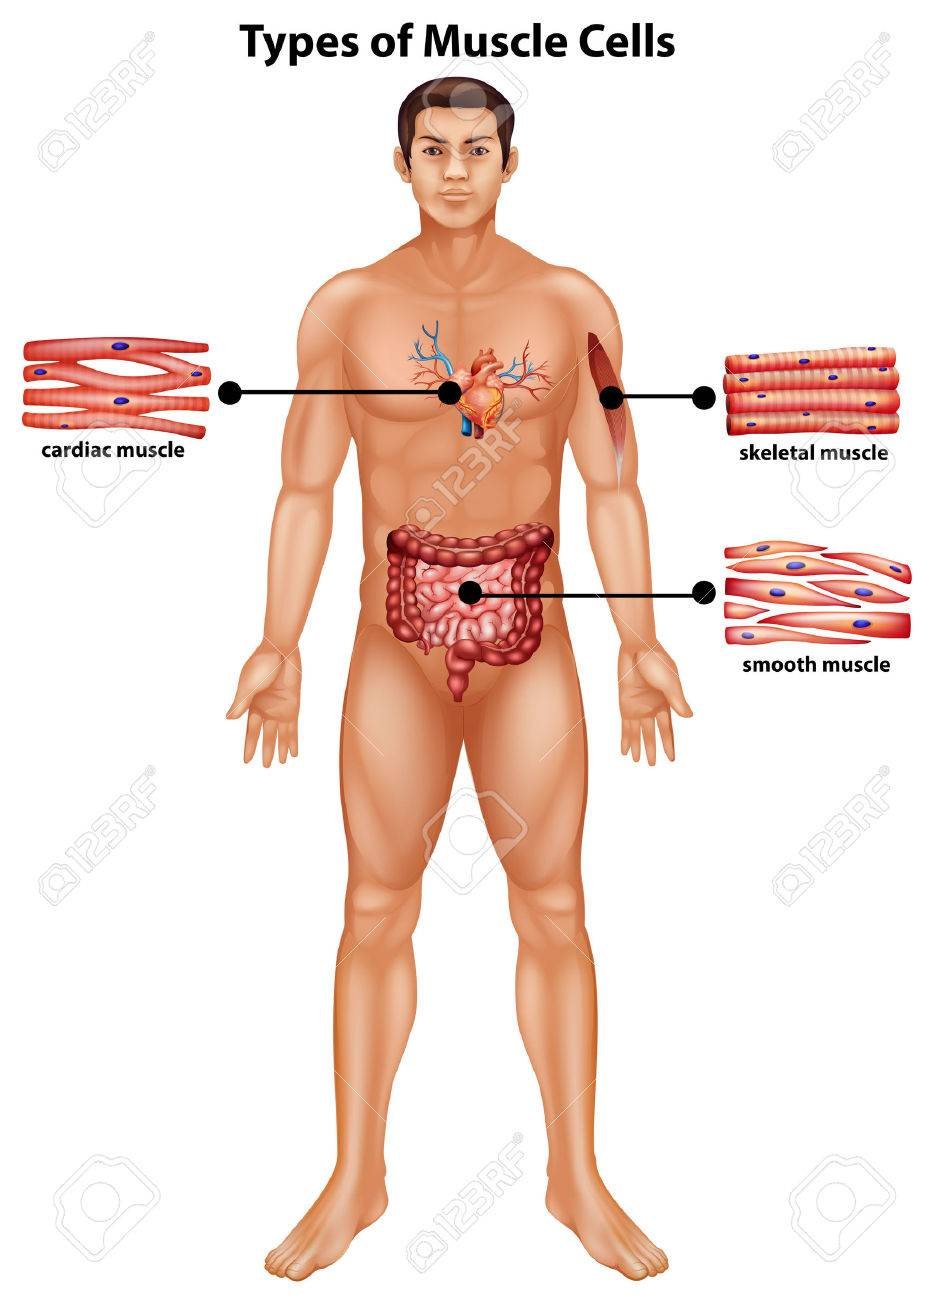 Diagram showing types of muscle cells illustration royalty free diagram showing types of muscle cells illustration stock vector 60662662 ccuart Gallery